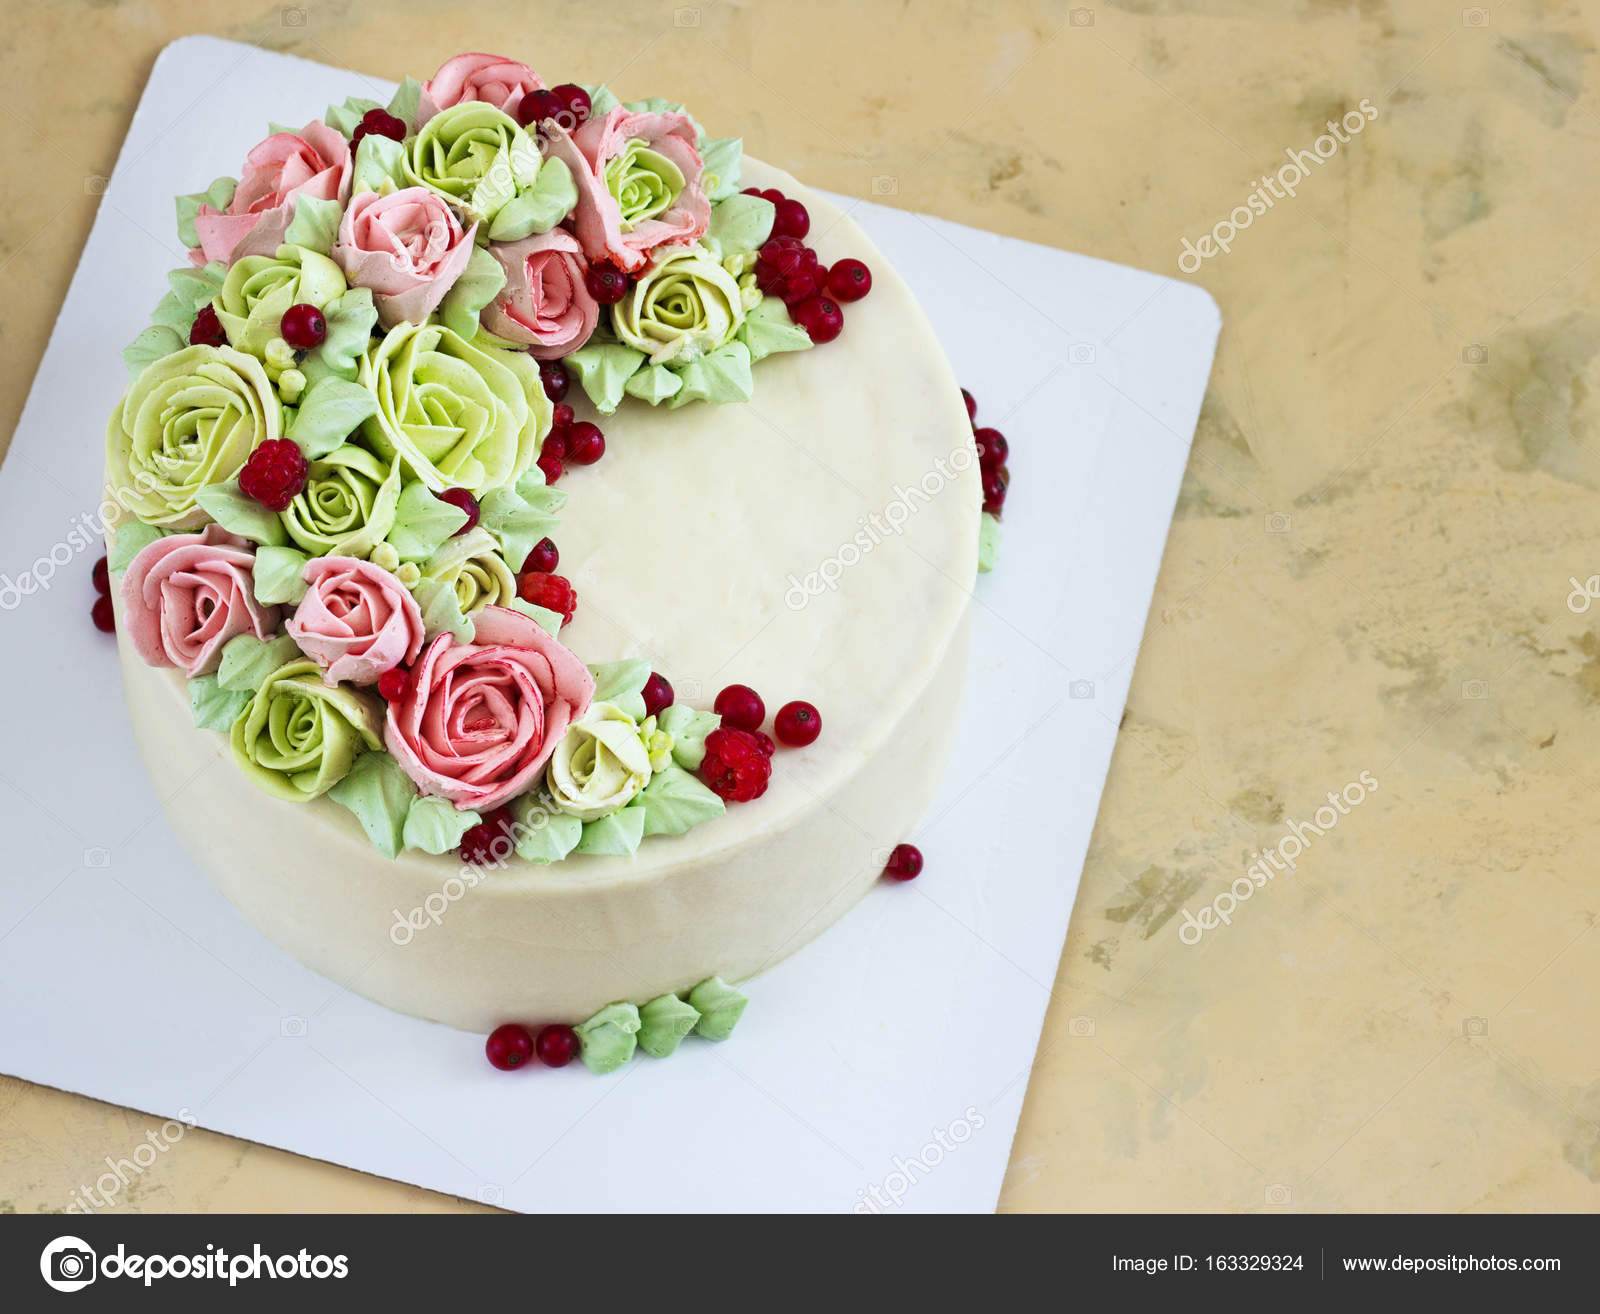 Birthday Cake With Flowers Rose On Light Background Stock Photo